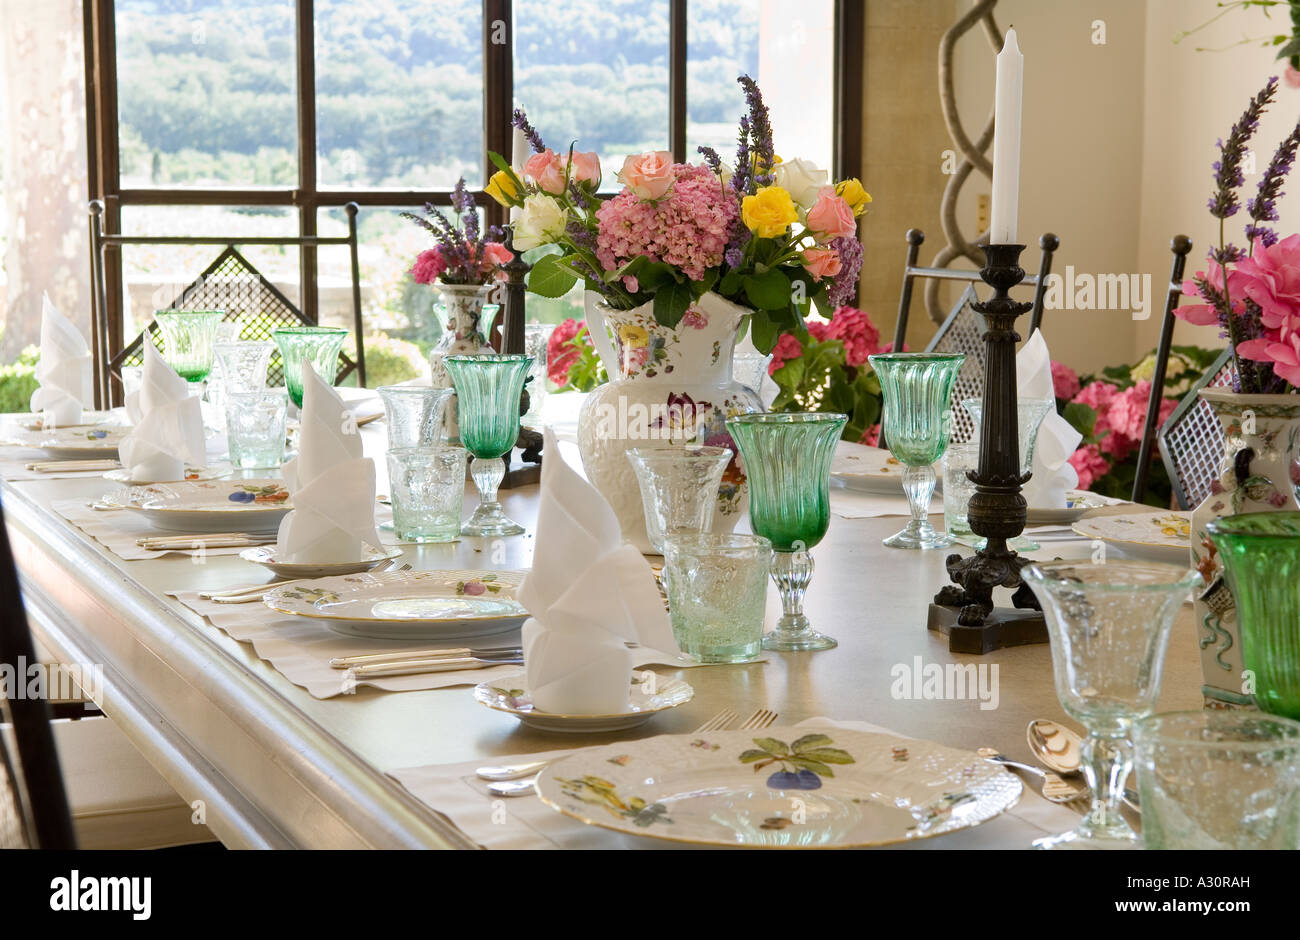 Table set with flower arrangements, wineglasses and napkins - Stock Image